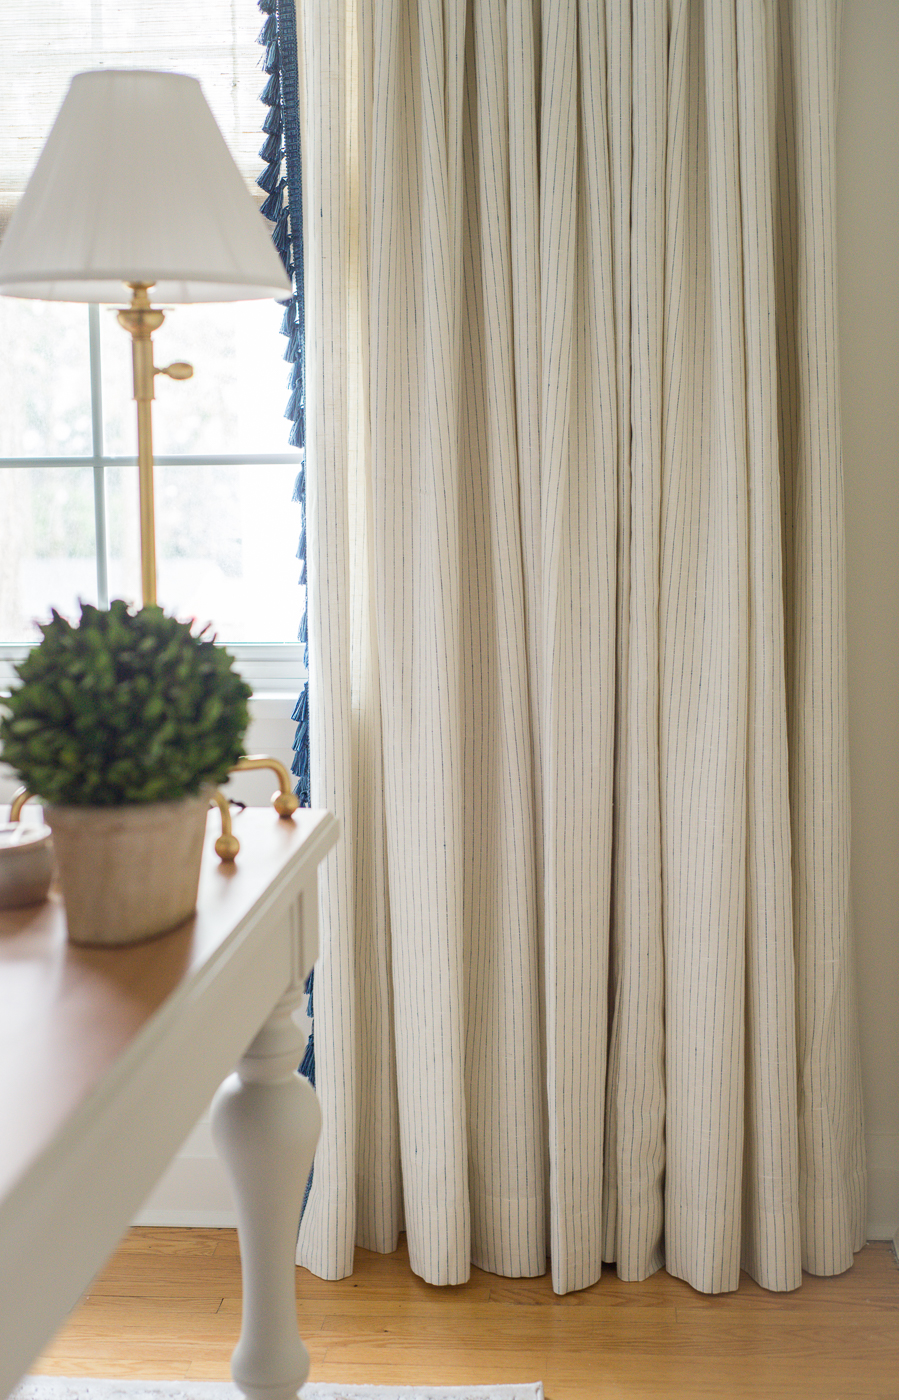 drapery with double pinch pleat, trim on leading edge, tassel trim leading edge, tassel trim on drapery